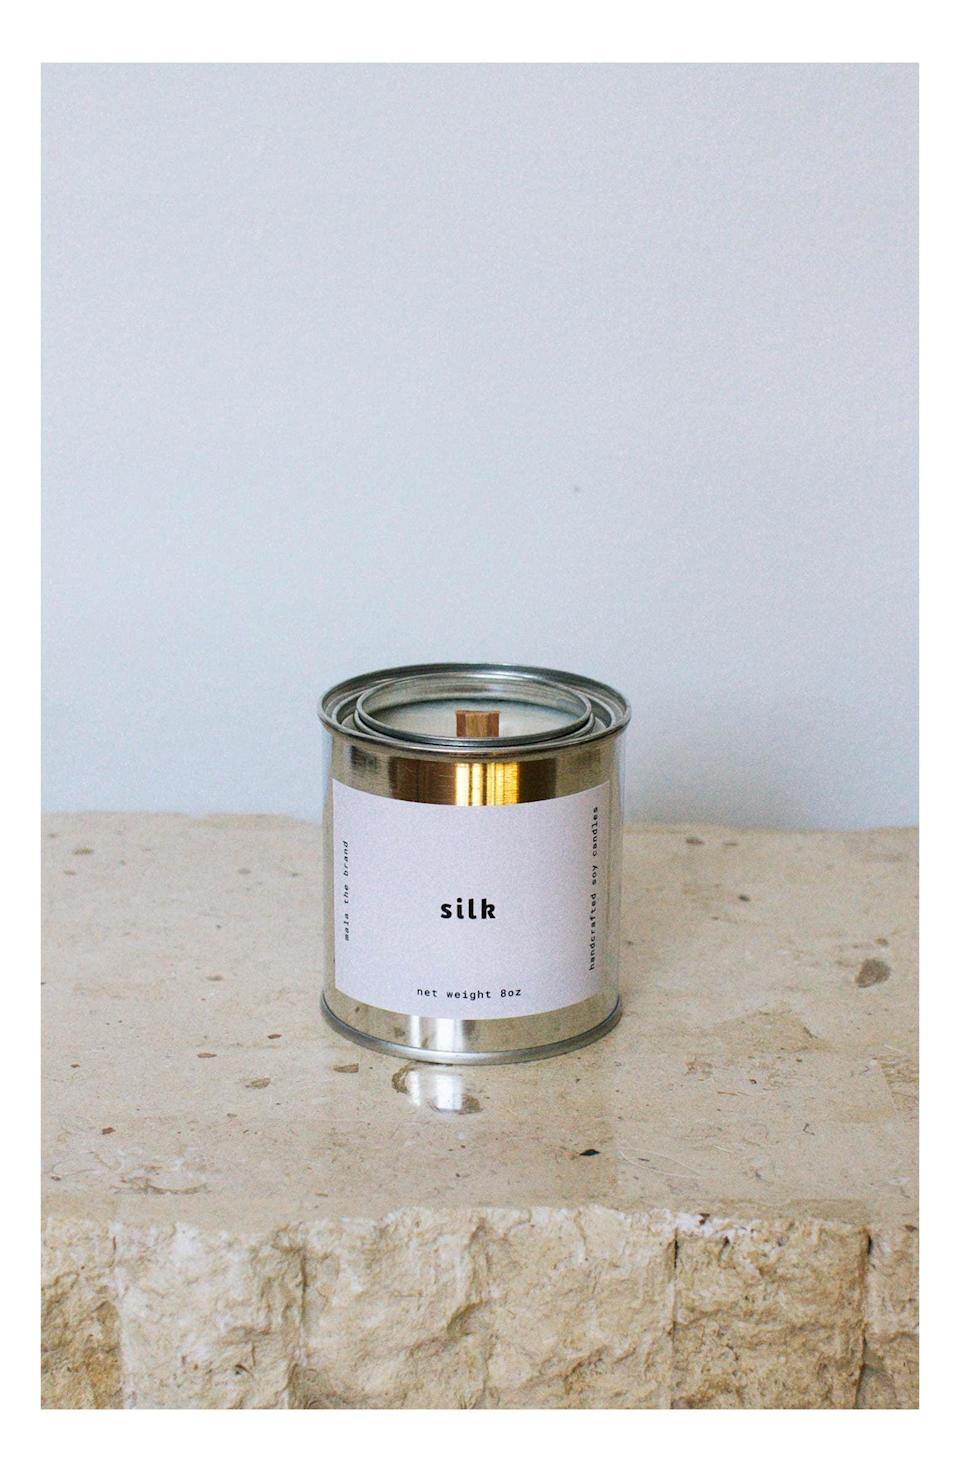 <p>The <span>Mala the Brand Candle</span> ($30) will set the mood with the ultimate sensorial experience. It's a wood-wick candle that crackles as it burns, so it sounds like a relaxing fireplace. It comes in a variety of fresh and cozy scents like silk, cabin fever, fireside, morning dew, and succulent. If you're shopping for someone who loves ASMR, this candle is a must!</p>